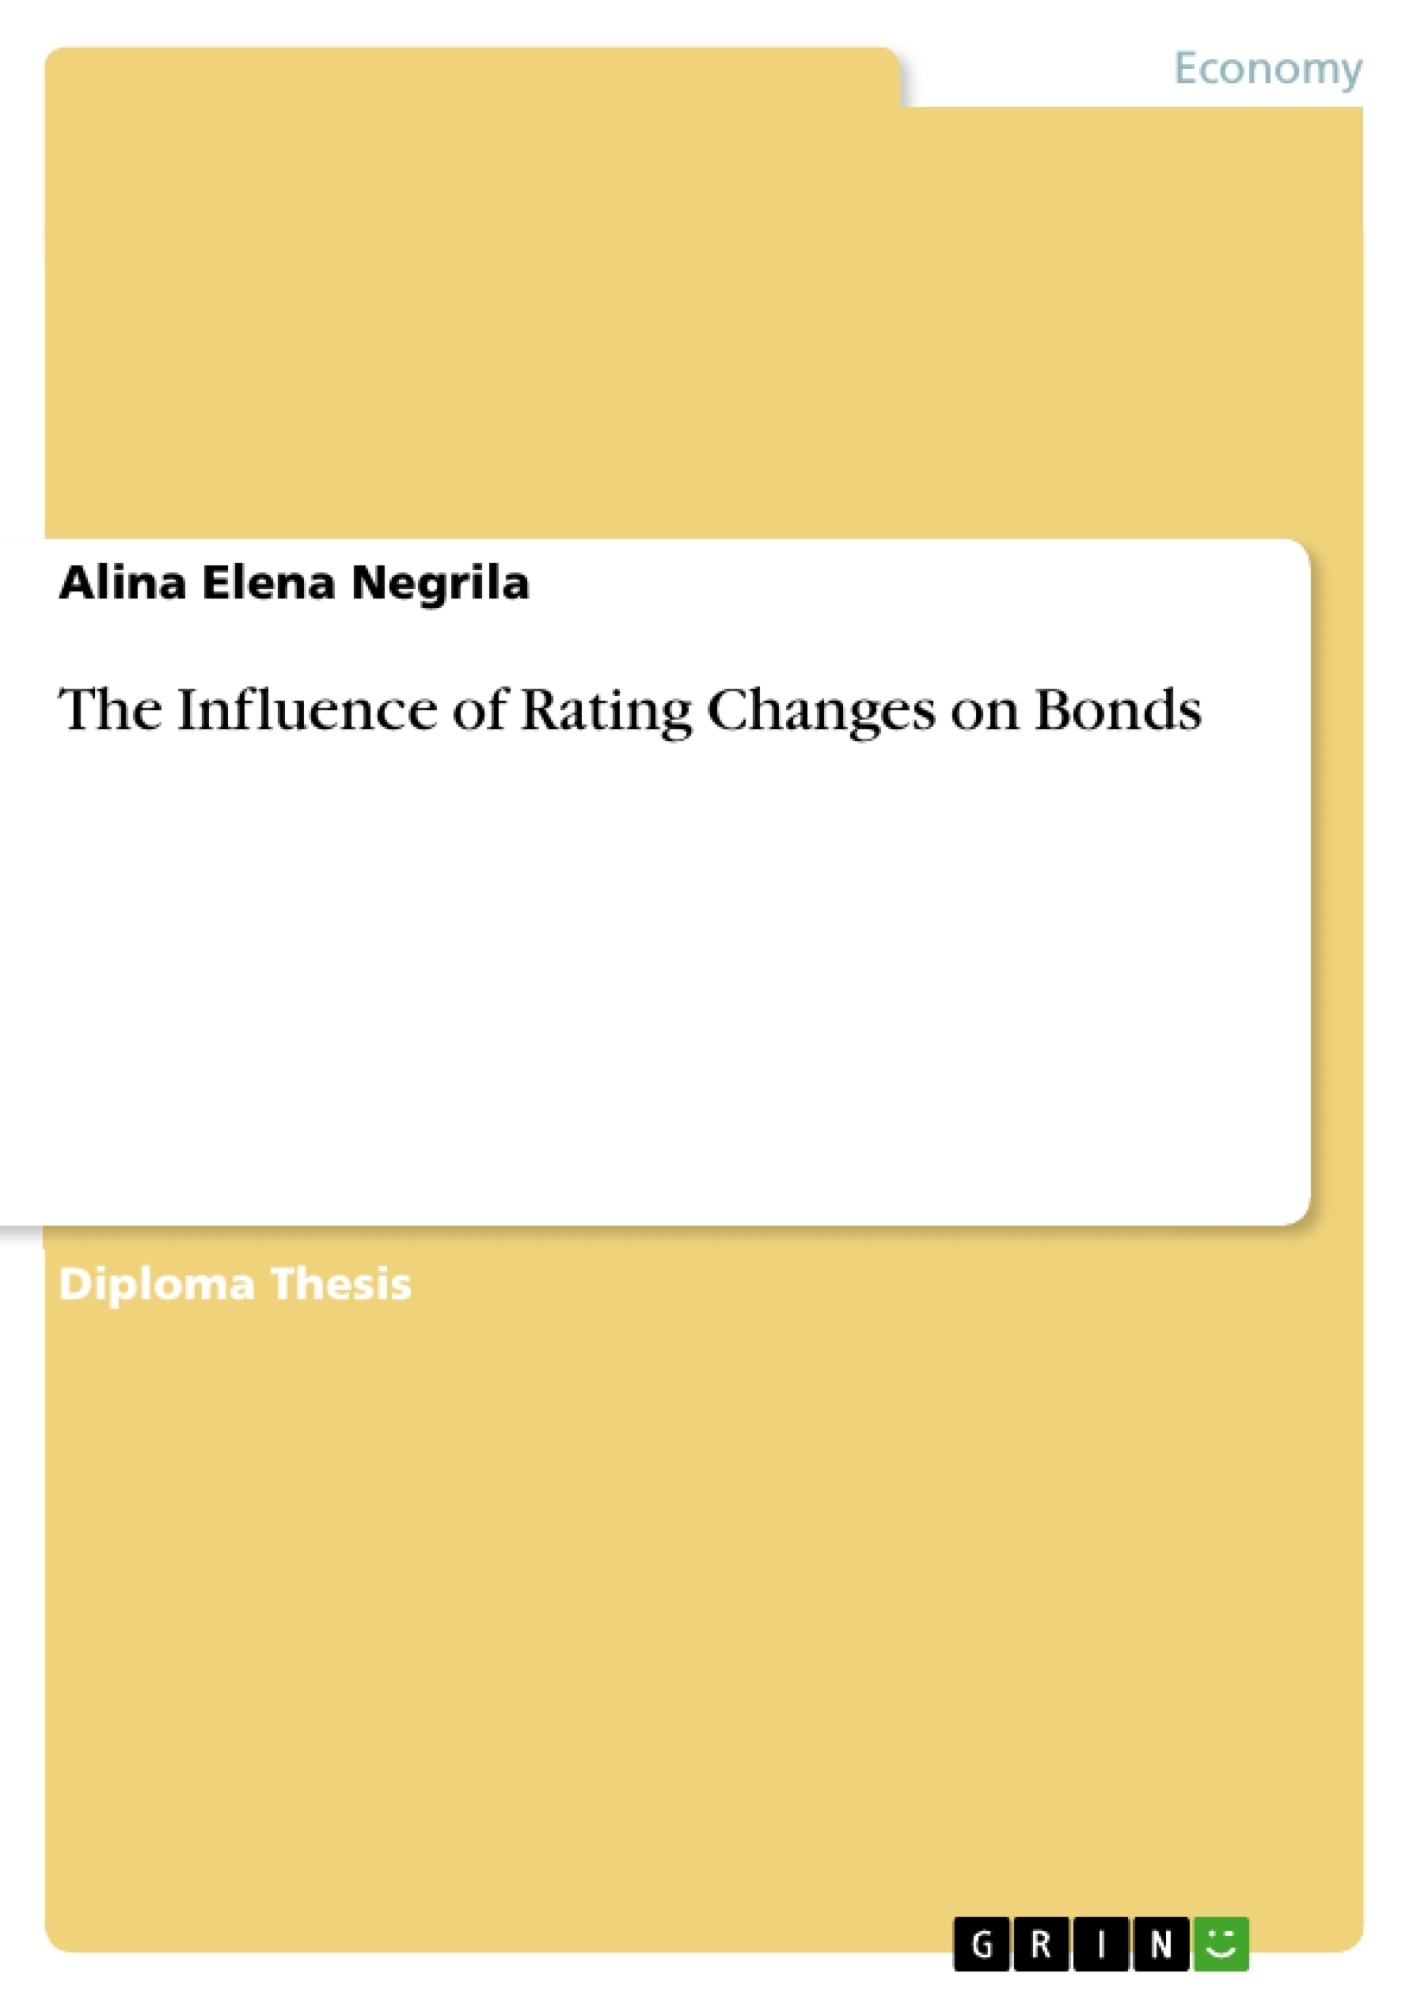 Title: The Influence of Rating Changes on Bonds